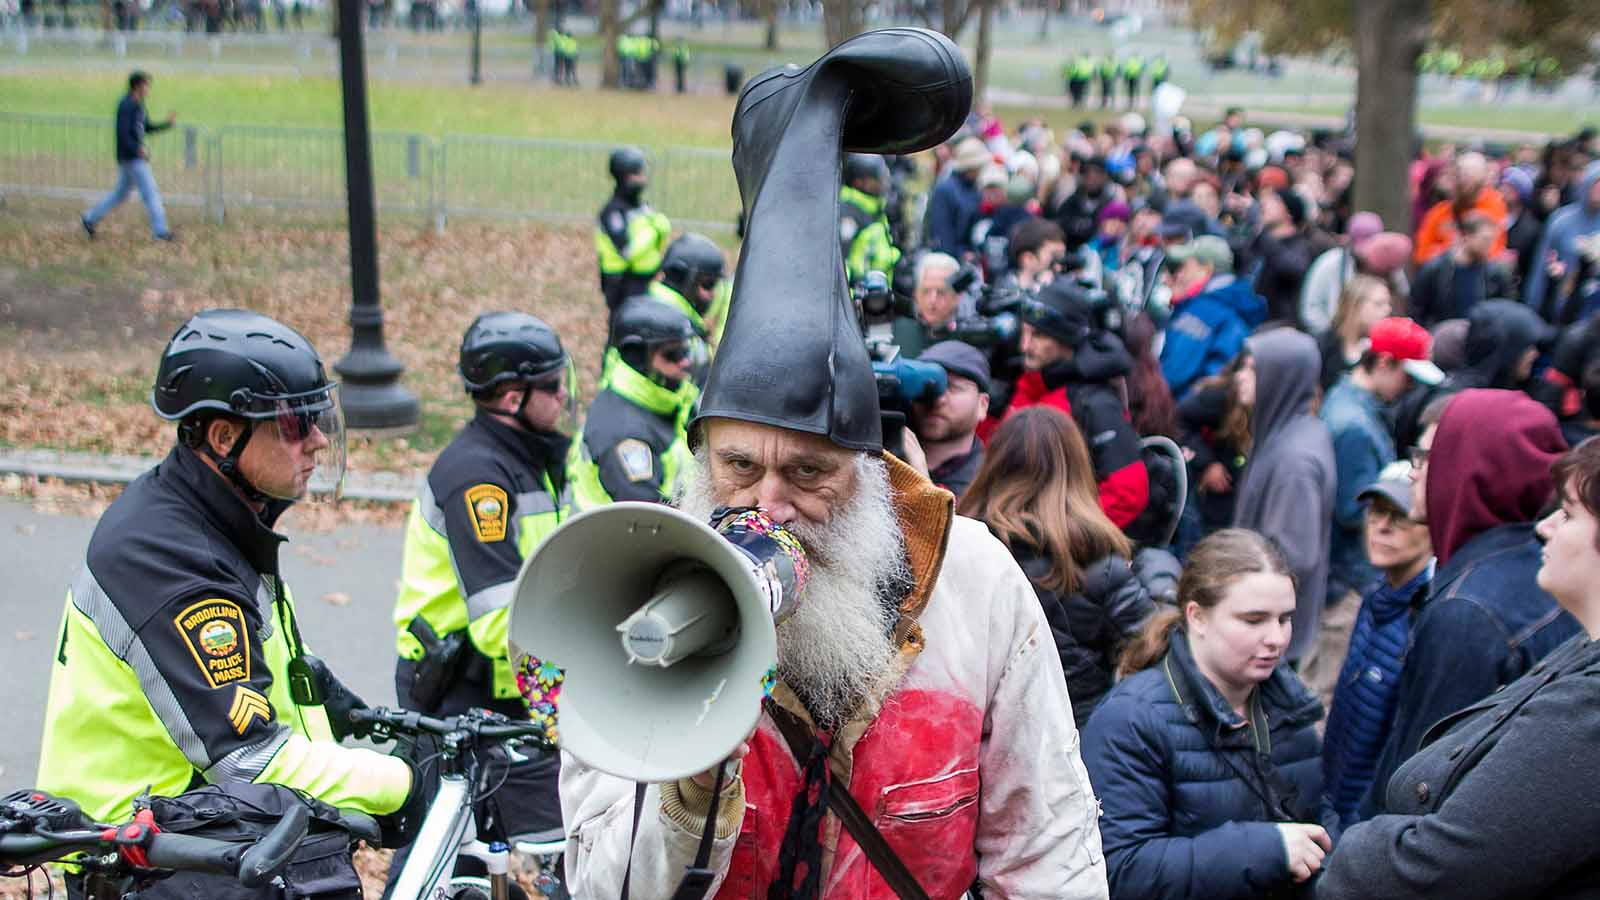 If you think Kanye is a strange candidate, wait until you meet Vermin Supreme, who's run for president every year since 1992.